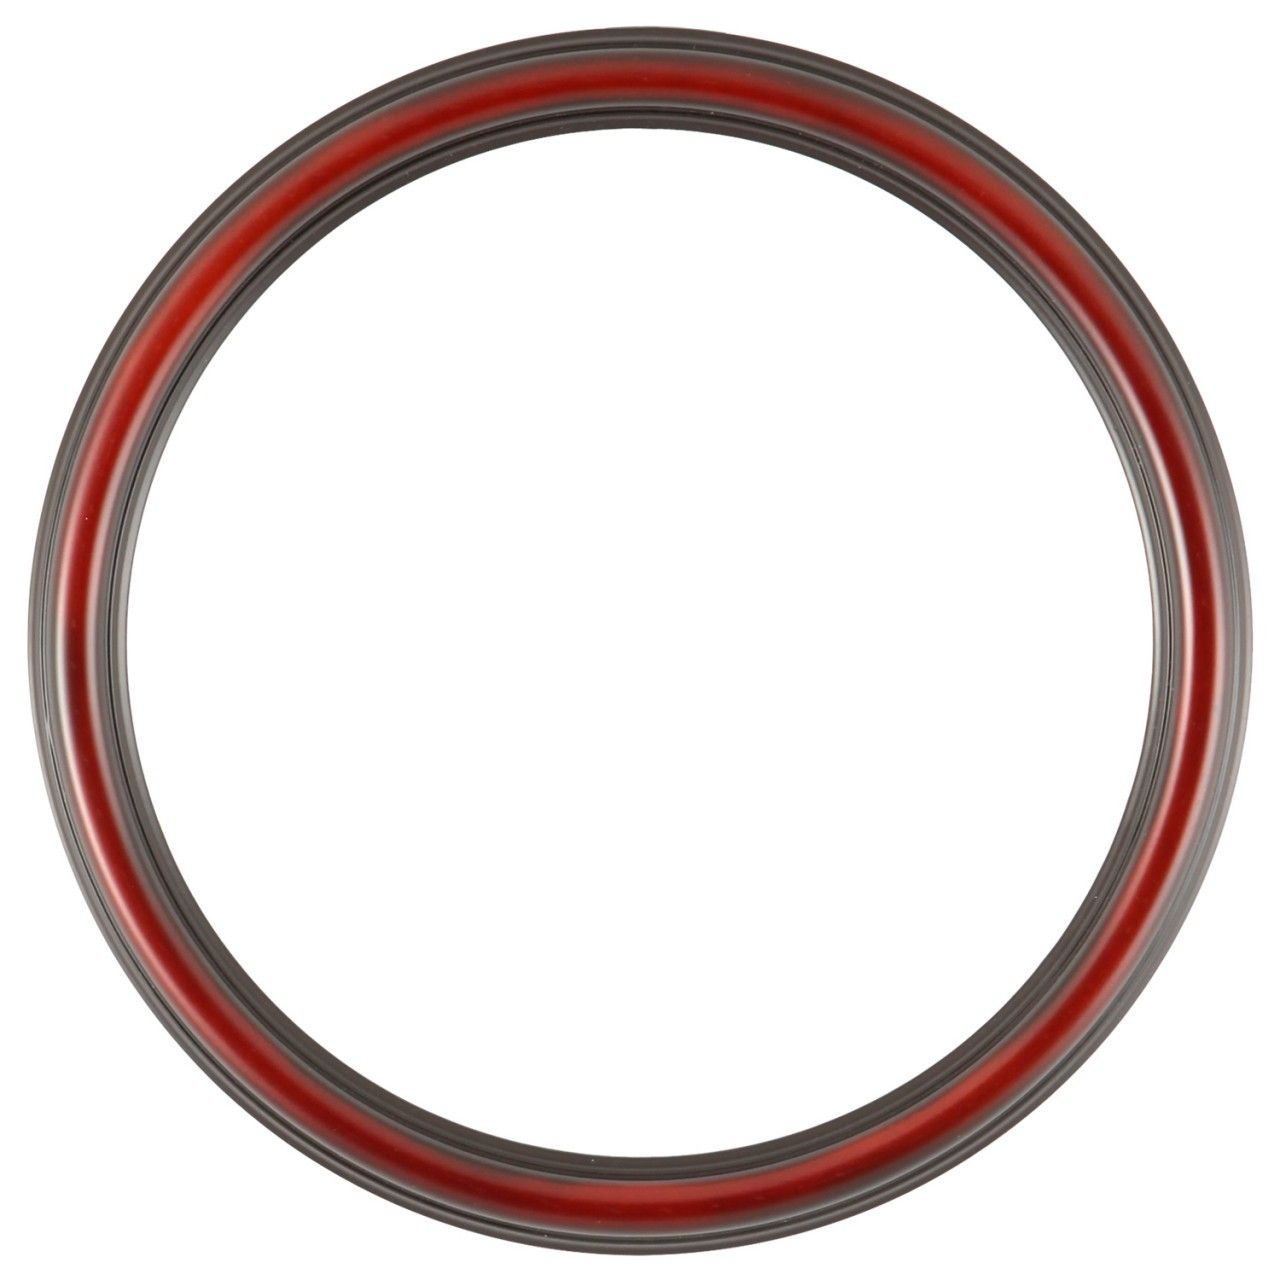 Saratoga Round Frame 550 Rosewood Picture Frame Decor Round Picture Frames Oval Picture Frames